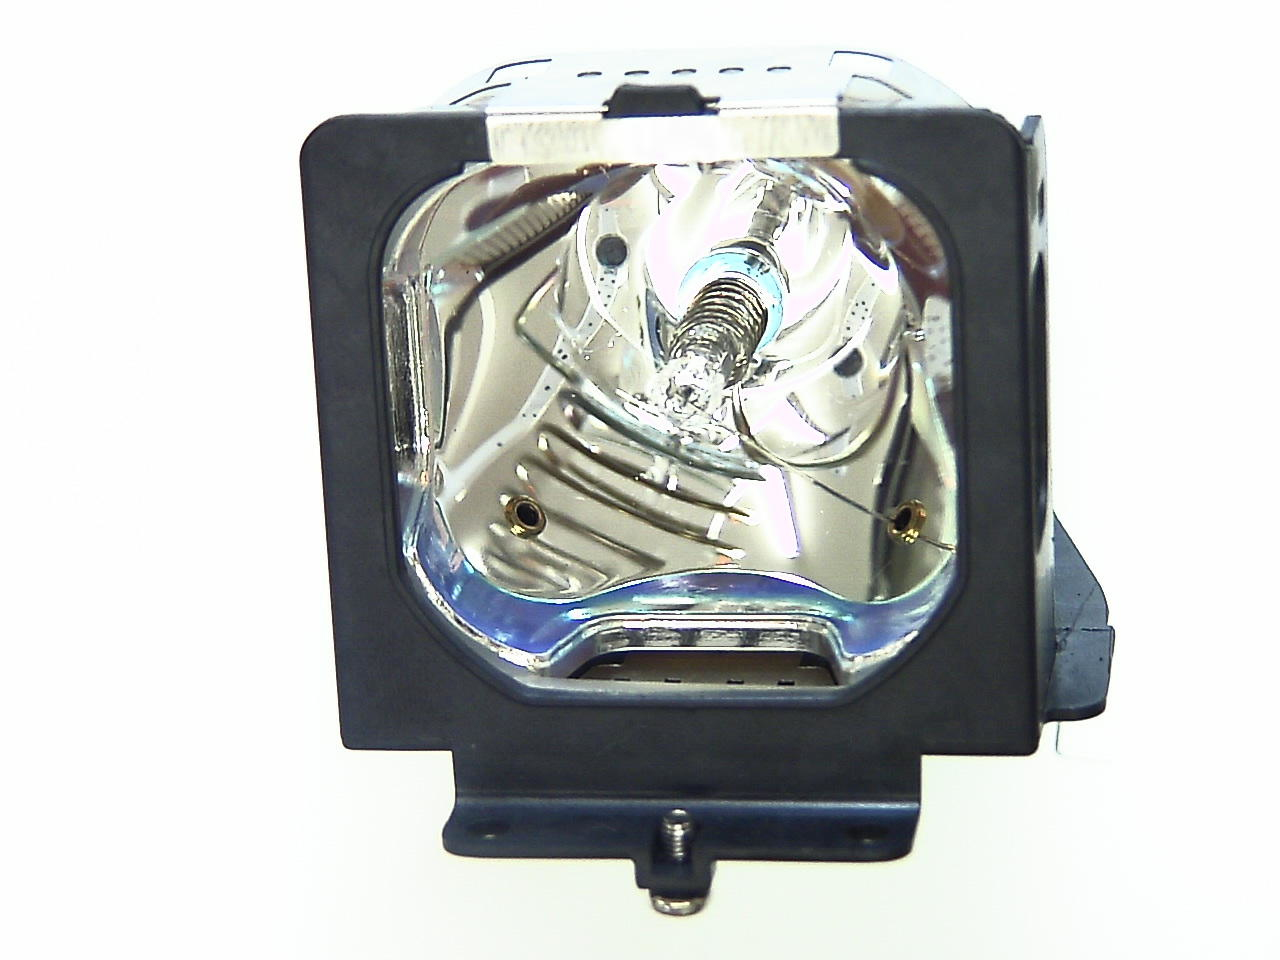 Diamond Lamps SP-LAMP-LP260-DL projector lamp 130 W UHP